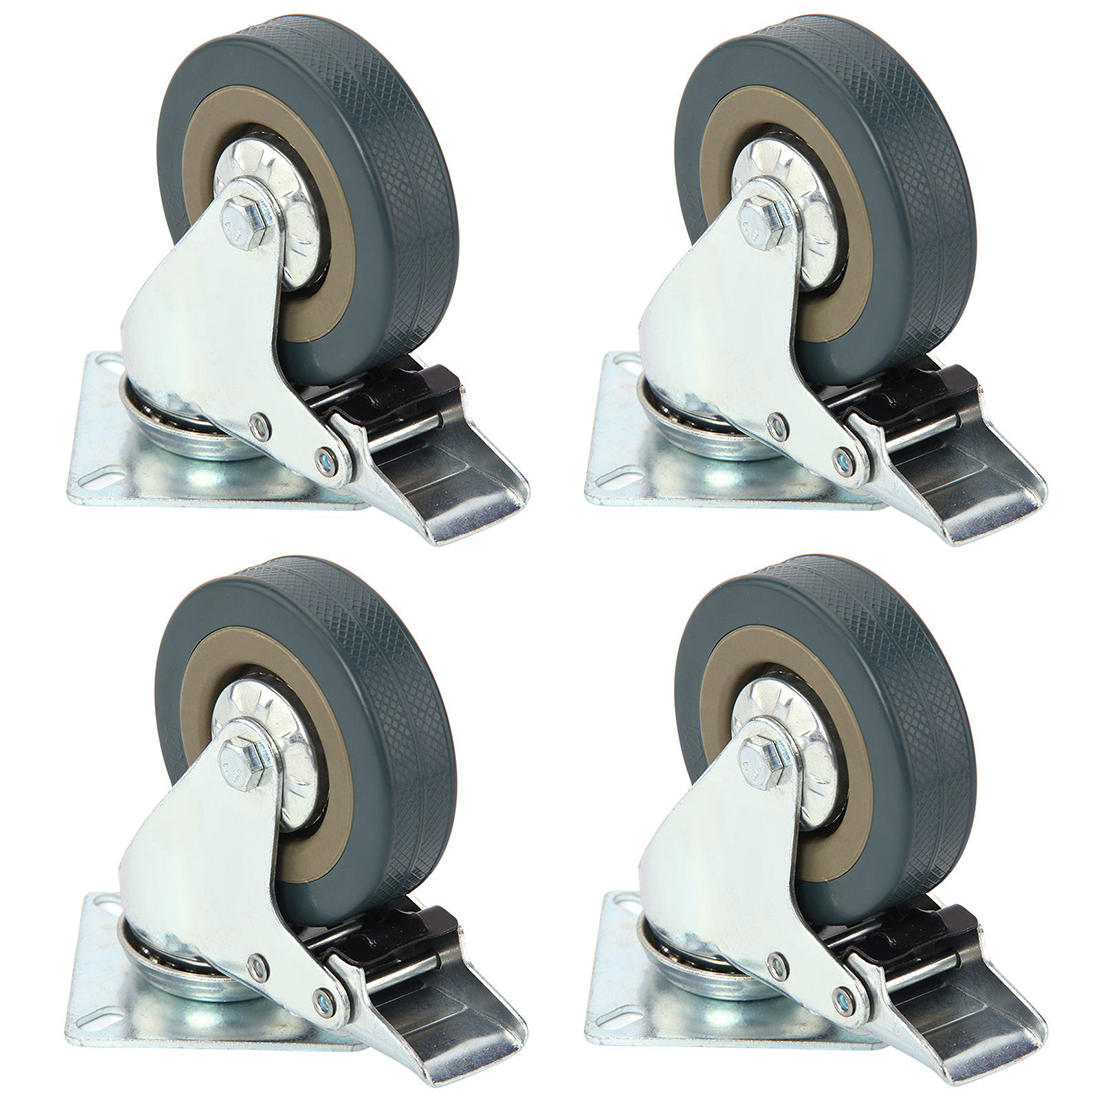 4Pcs Bolt Plate Fixing And Solid Rubber 360 Degree Rotation Wheels Heavy Duty Rubber Swivel Castor Wheels Trolley Caster Brake 4pcs 3 2 rubber rc 1 8 wheels